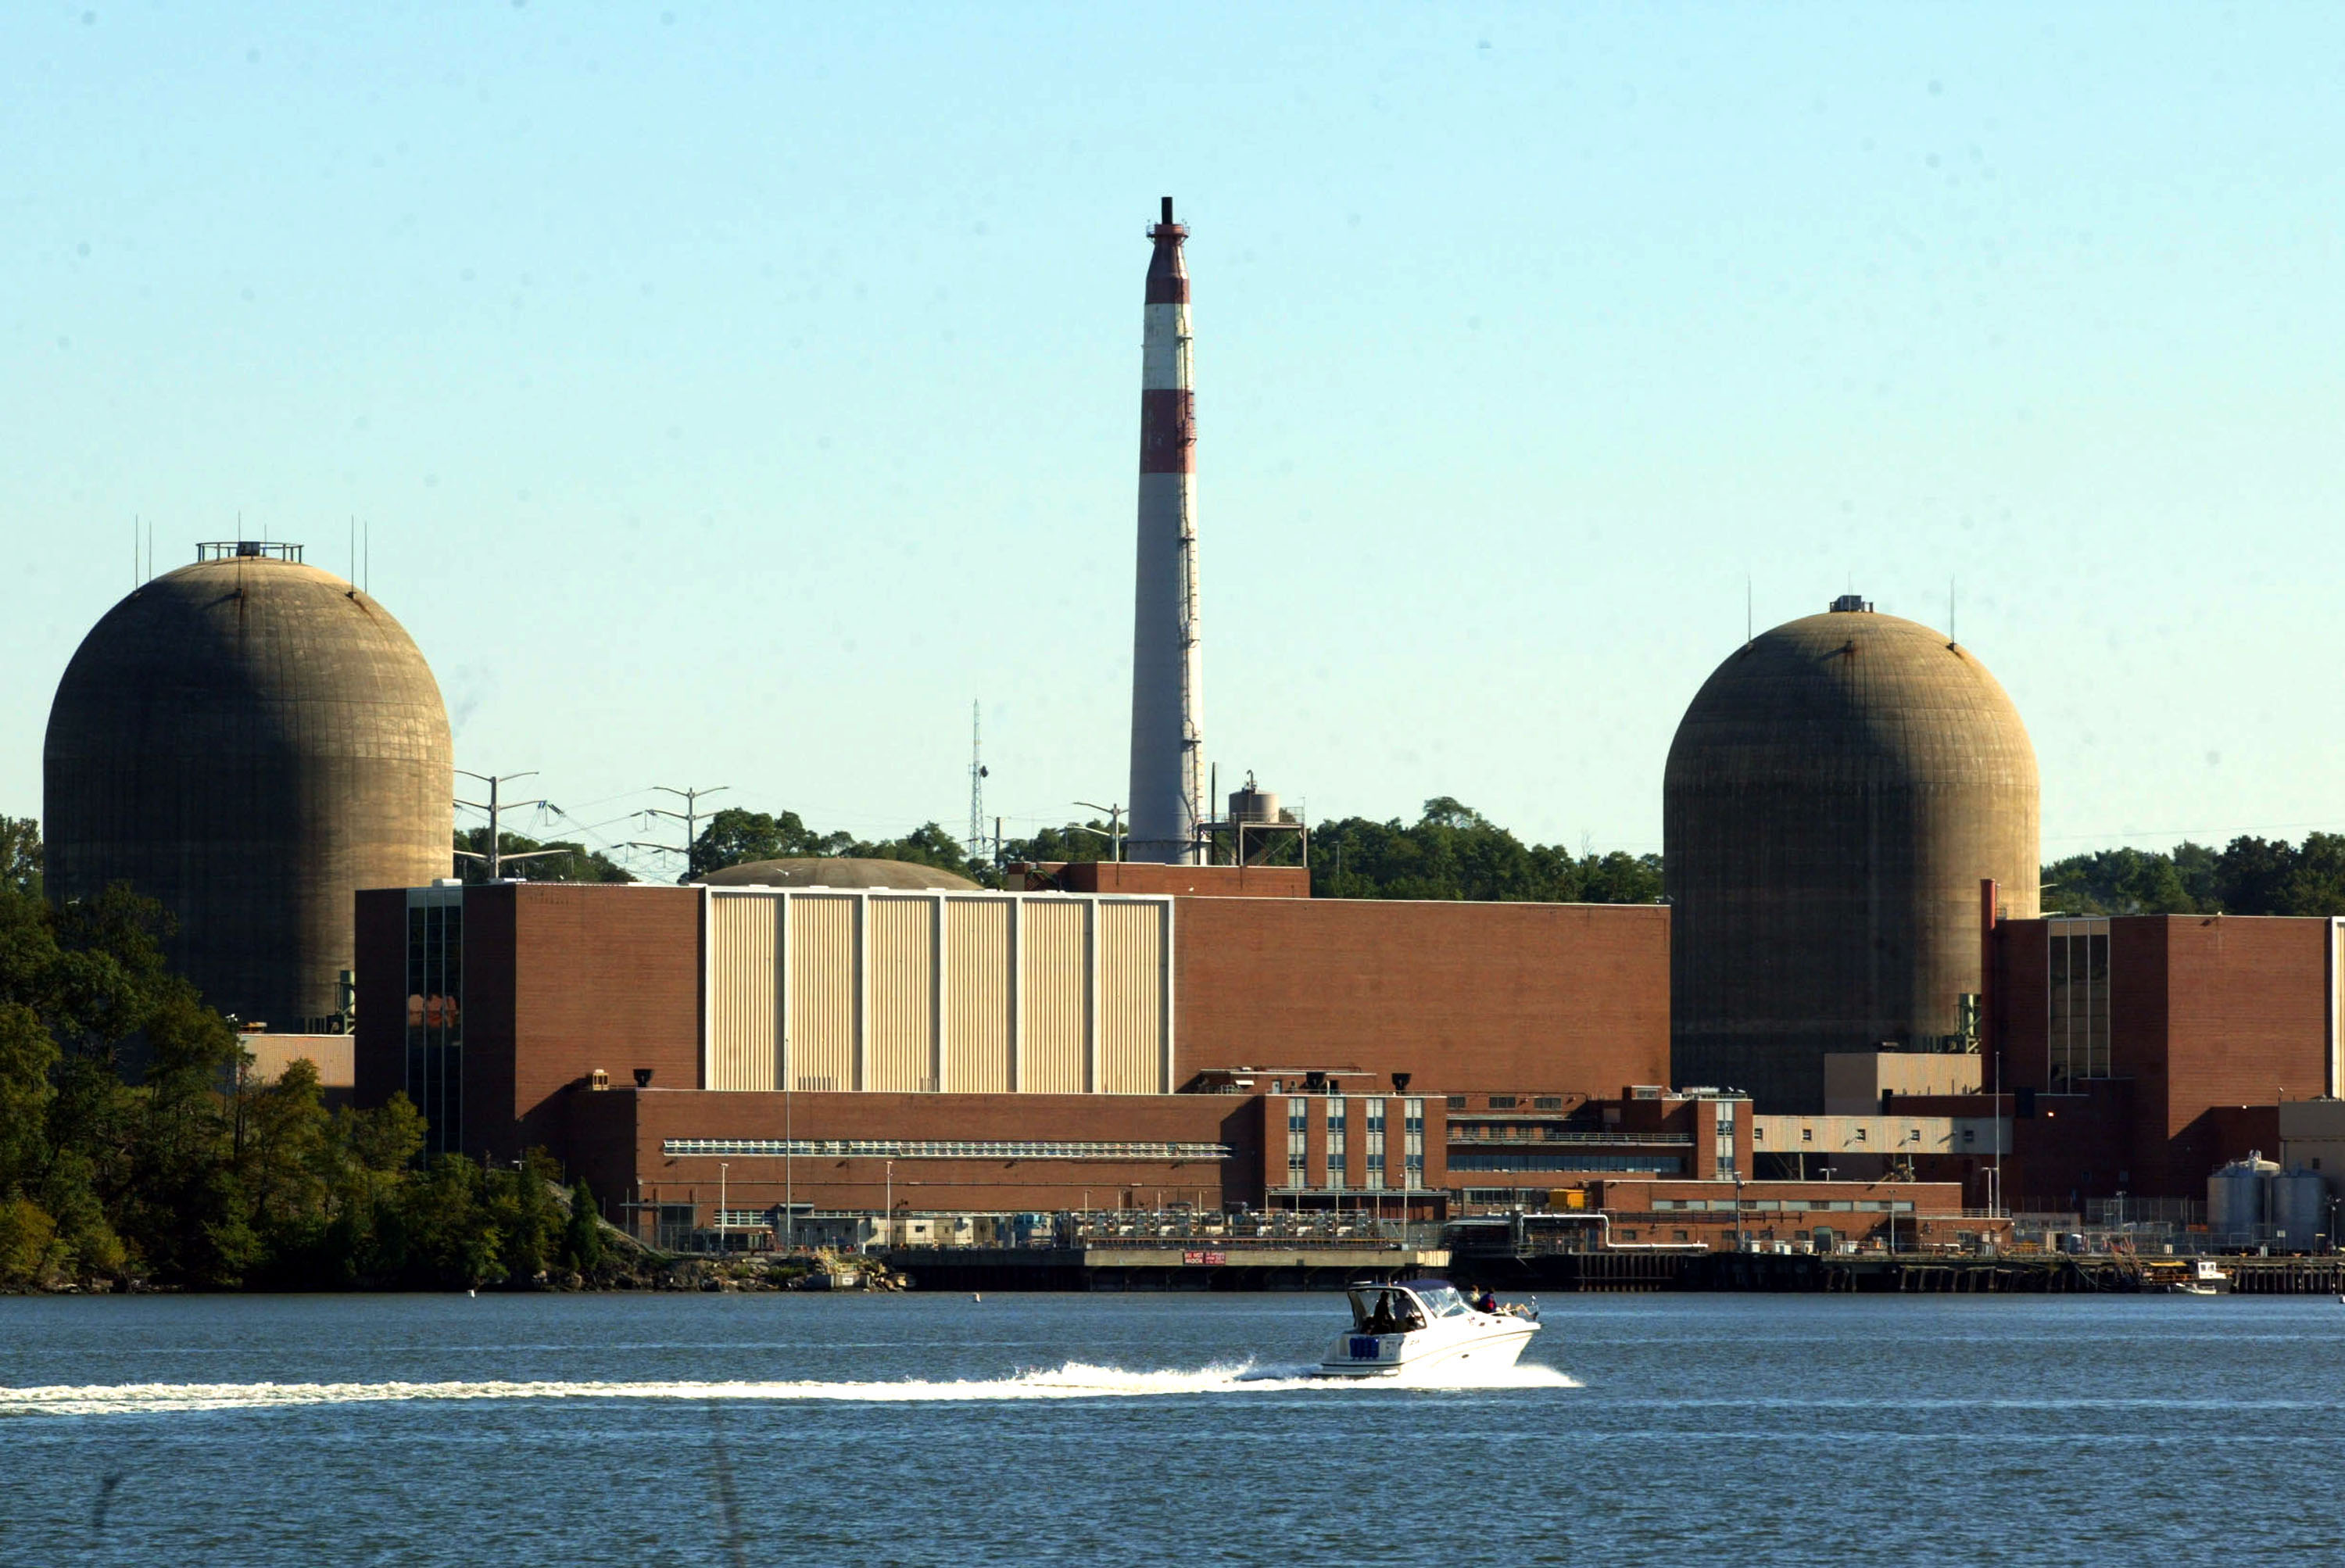 does india need nuclear power Nuclear power is the fifth-largest source of electricity in india after coal, gas, hydroelectricity and wind power as of march 2018, india has 22 nuclear reactors in operation in 7 nuclear power plants, having a total installed capacity of 6,780 mw nuclear power produced a total of 35 twh of electricity in 2017.